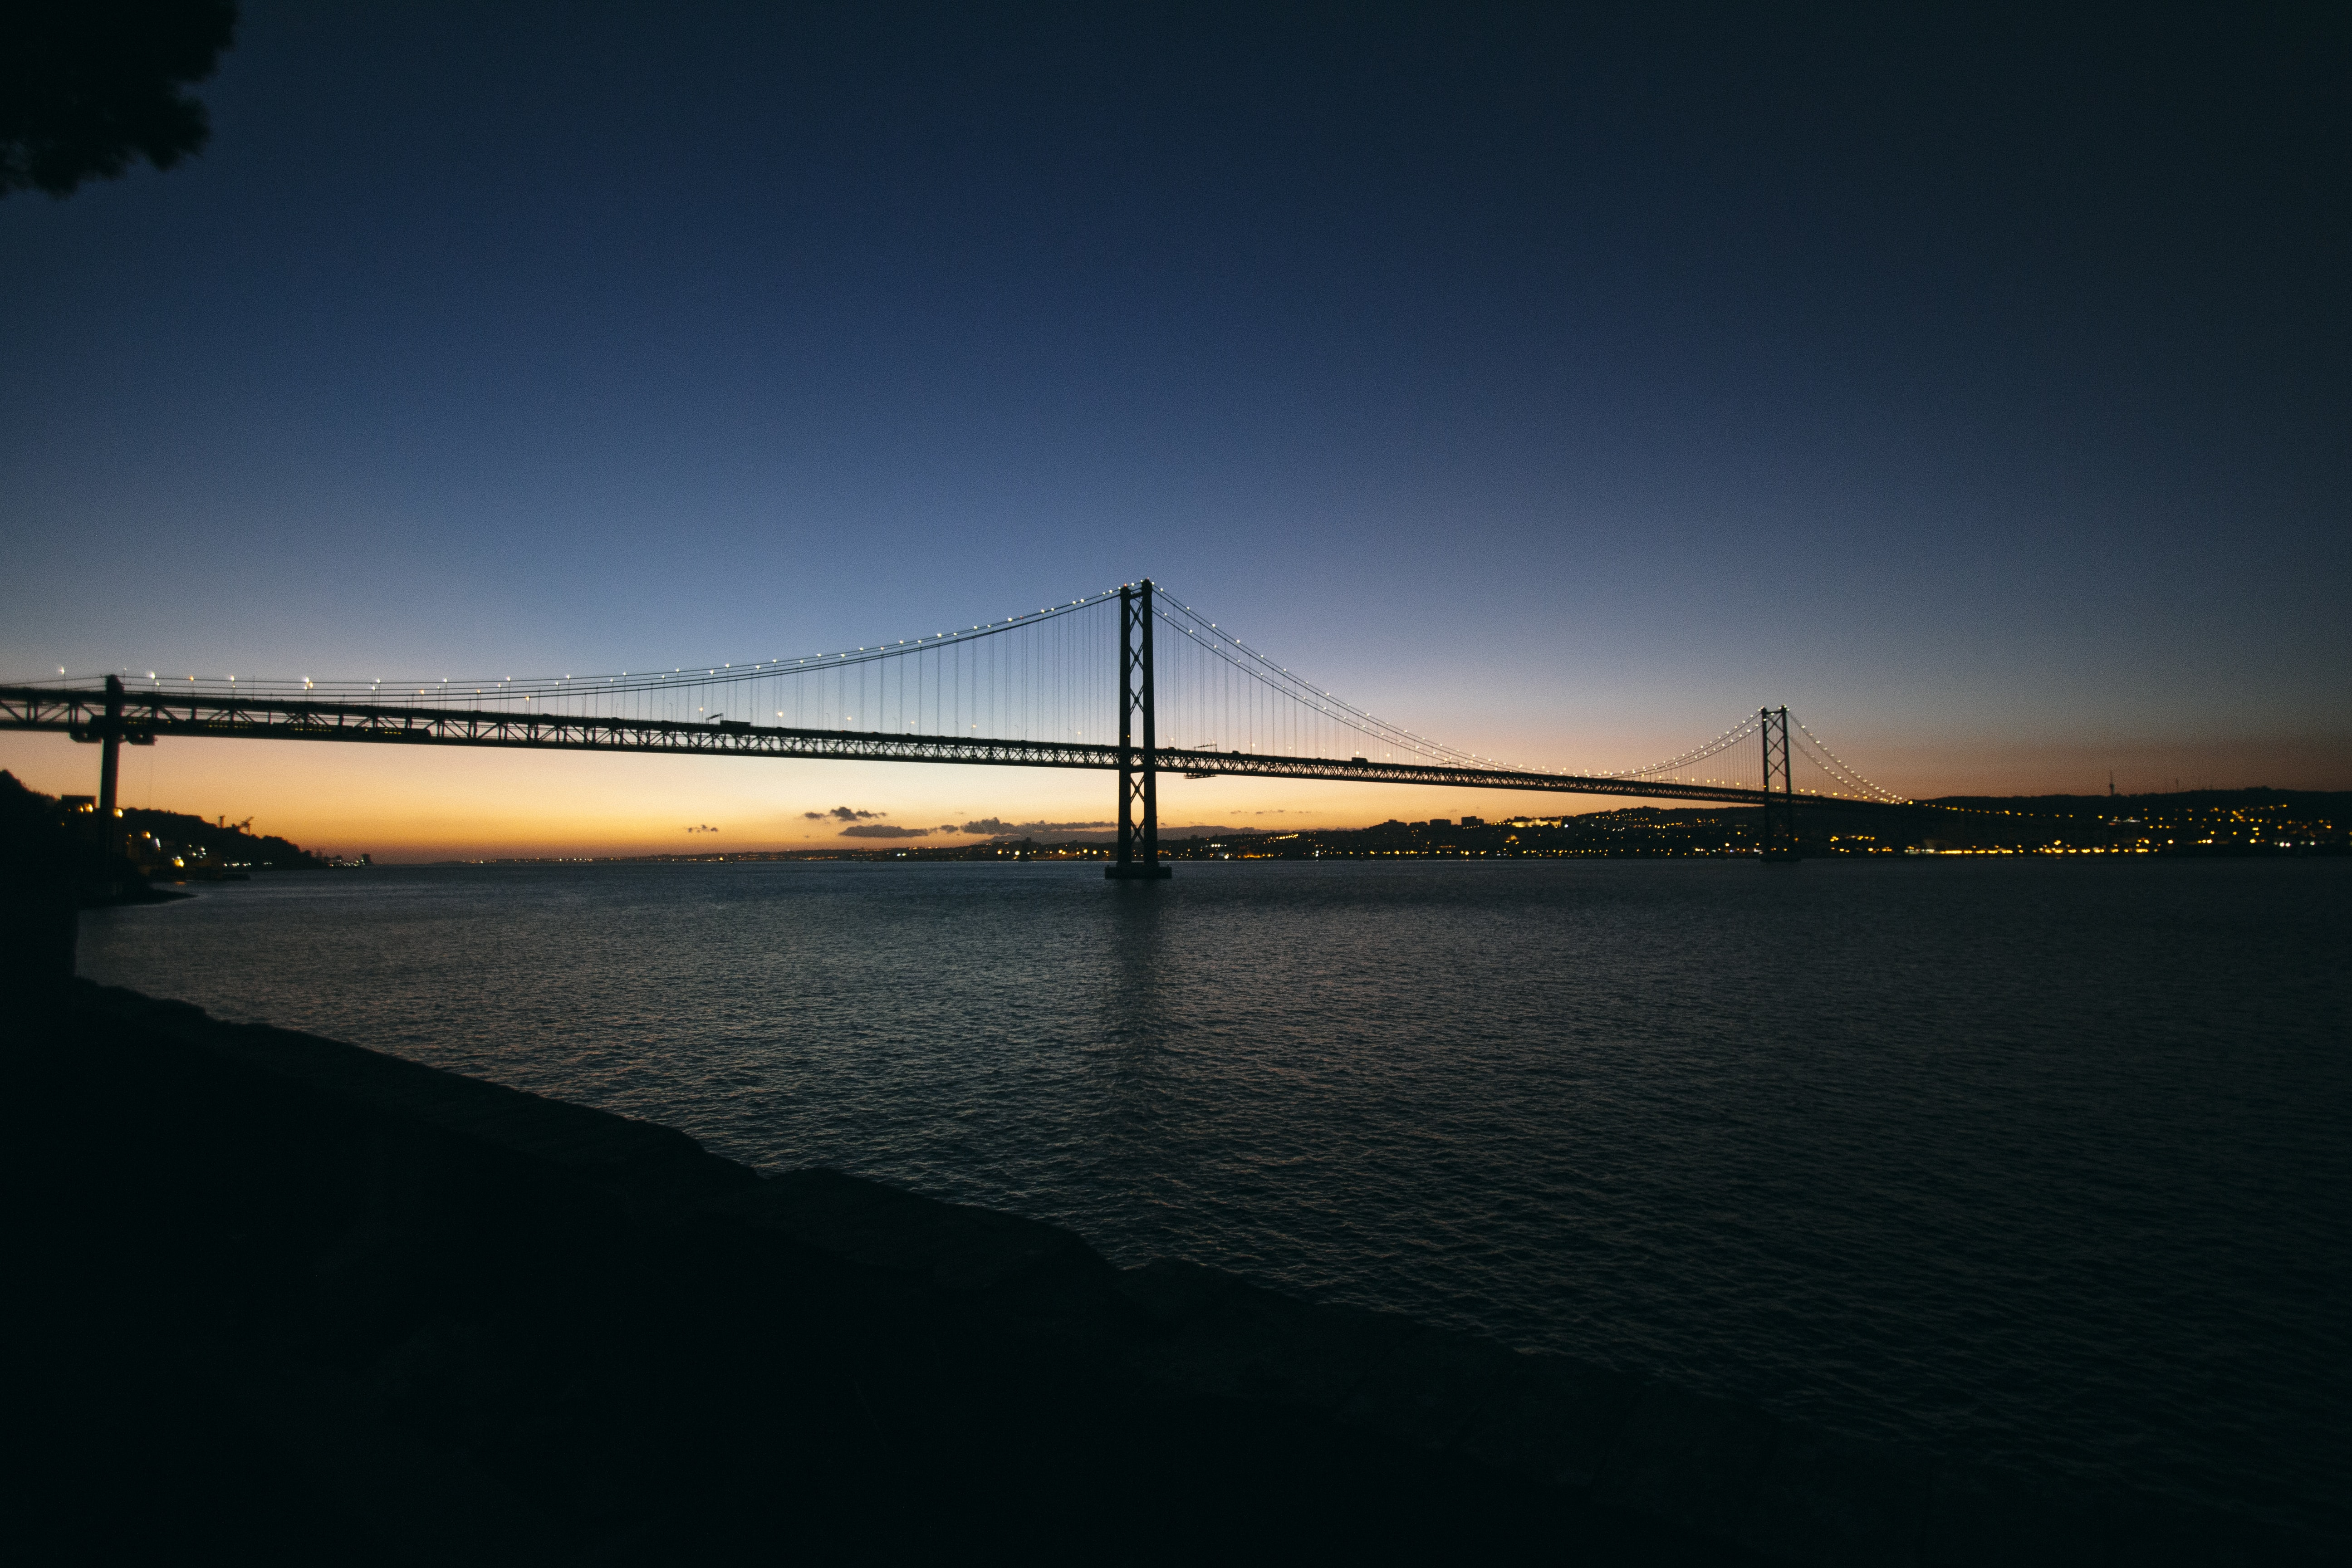 The end of a sunset behind a large suspension bridge over water in Lisbon.